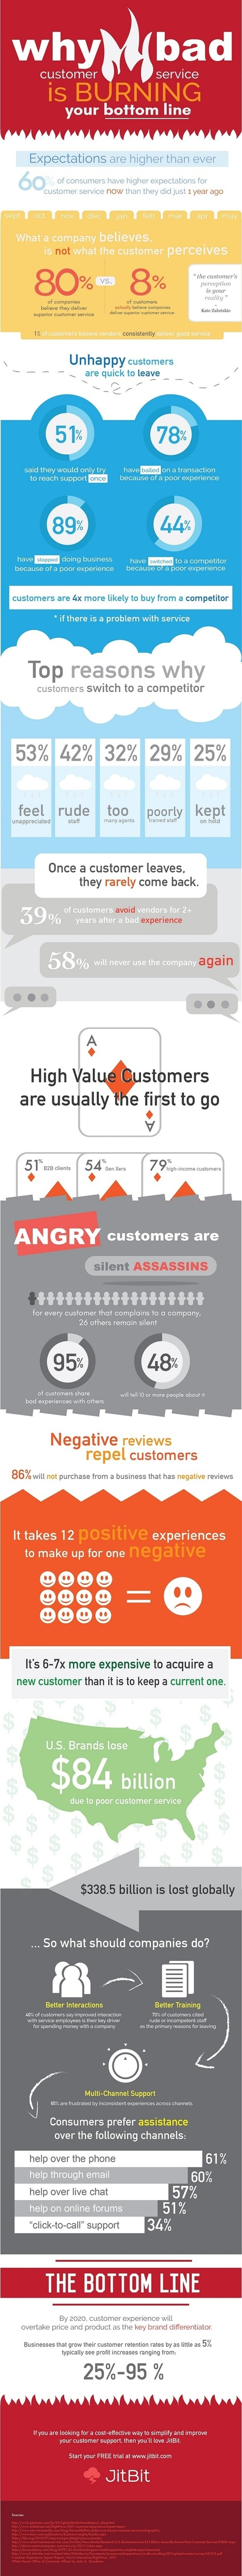 Why Bad Customer Service Is Burning Your Bottom Line [Infographic] | New Customer & Employee Management | Scoop.it